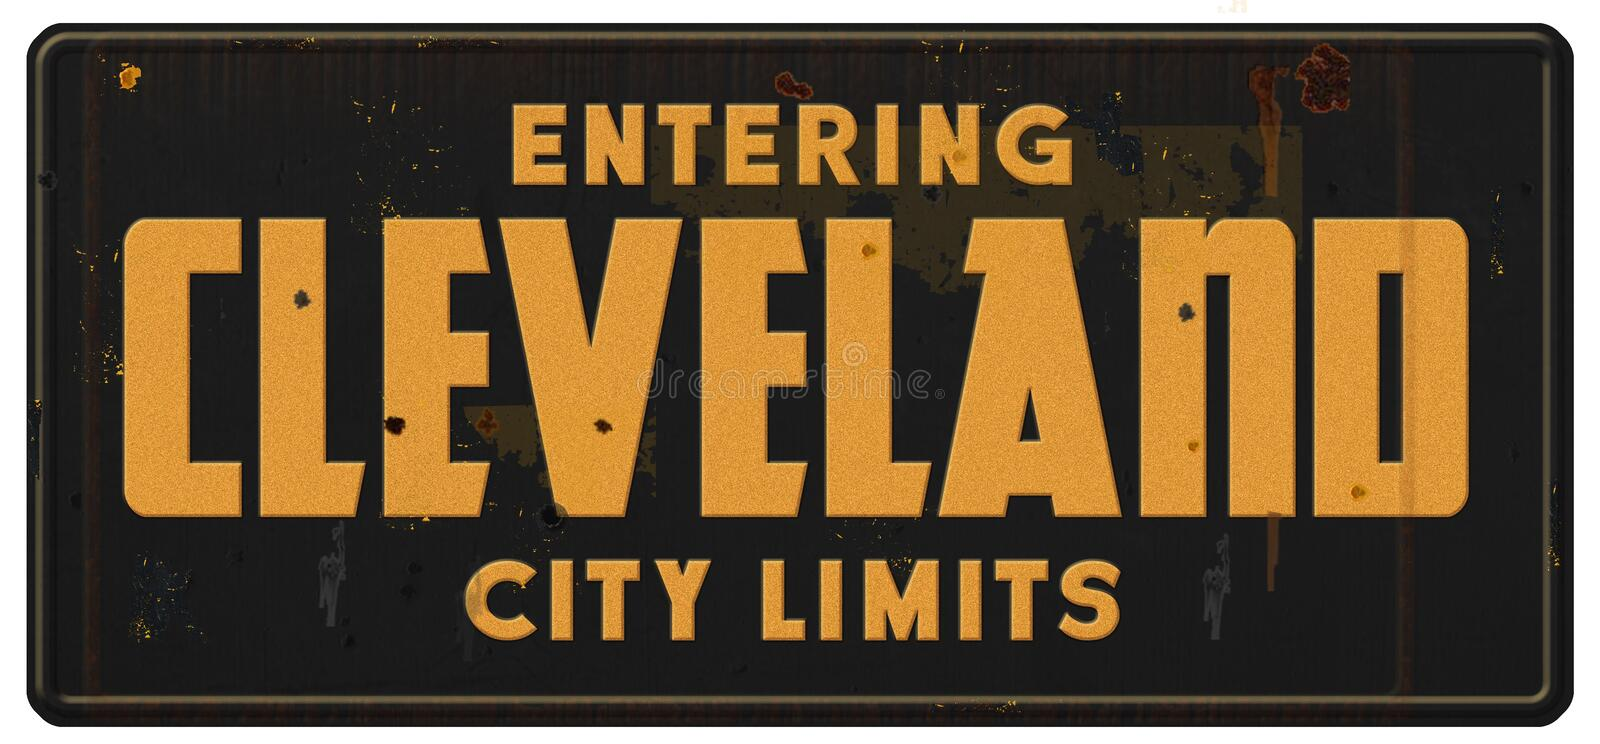 Cleveland City Limits Sign Grunge Metal Retro. Ohio vintage Welcome Entering OH stock photos